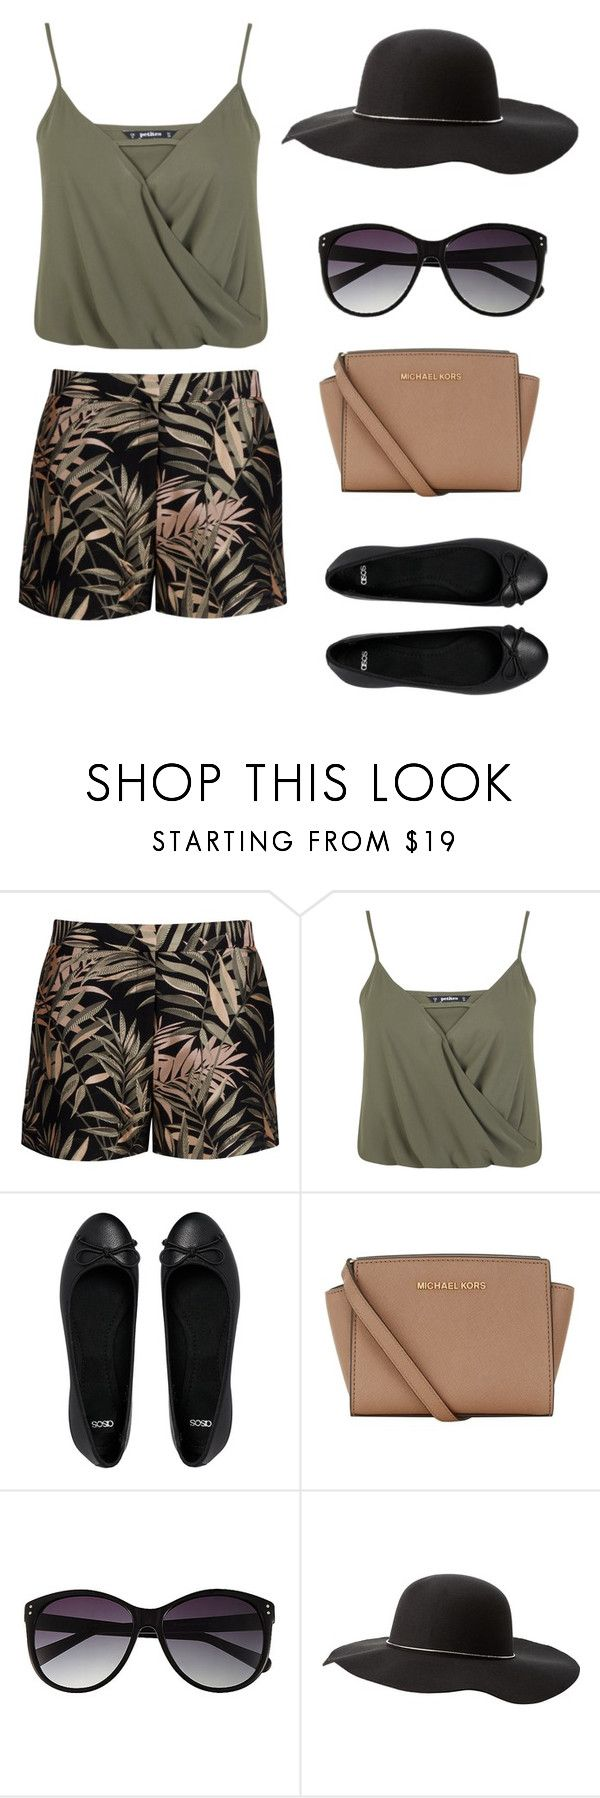 """""""Day Out At The Zoo"""" by emymoo ❤ liked on Polyvore featuring Ted Baker, Miss Selfridge, ASOS, MICHAEL Michael Kors, Vince Camuto and Charlotte Russe"""